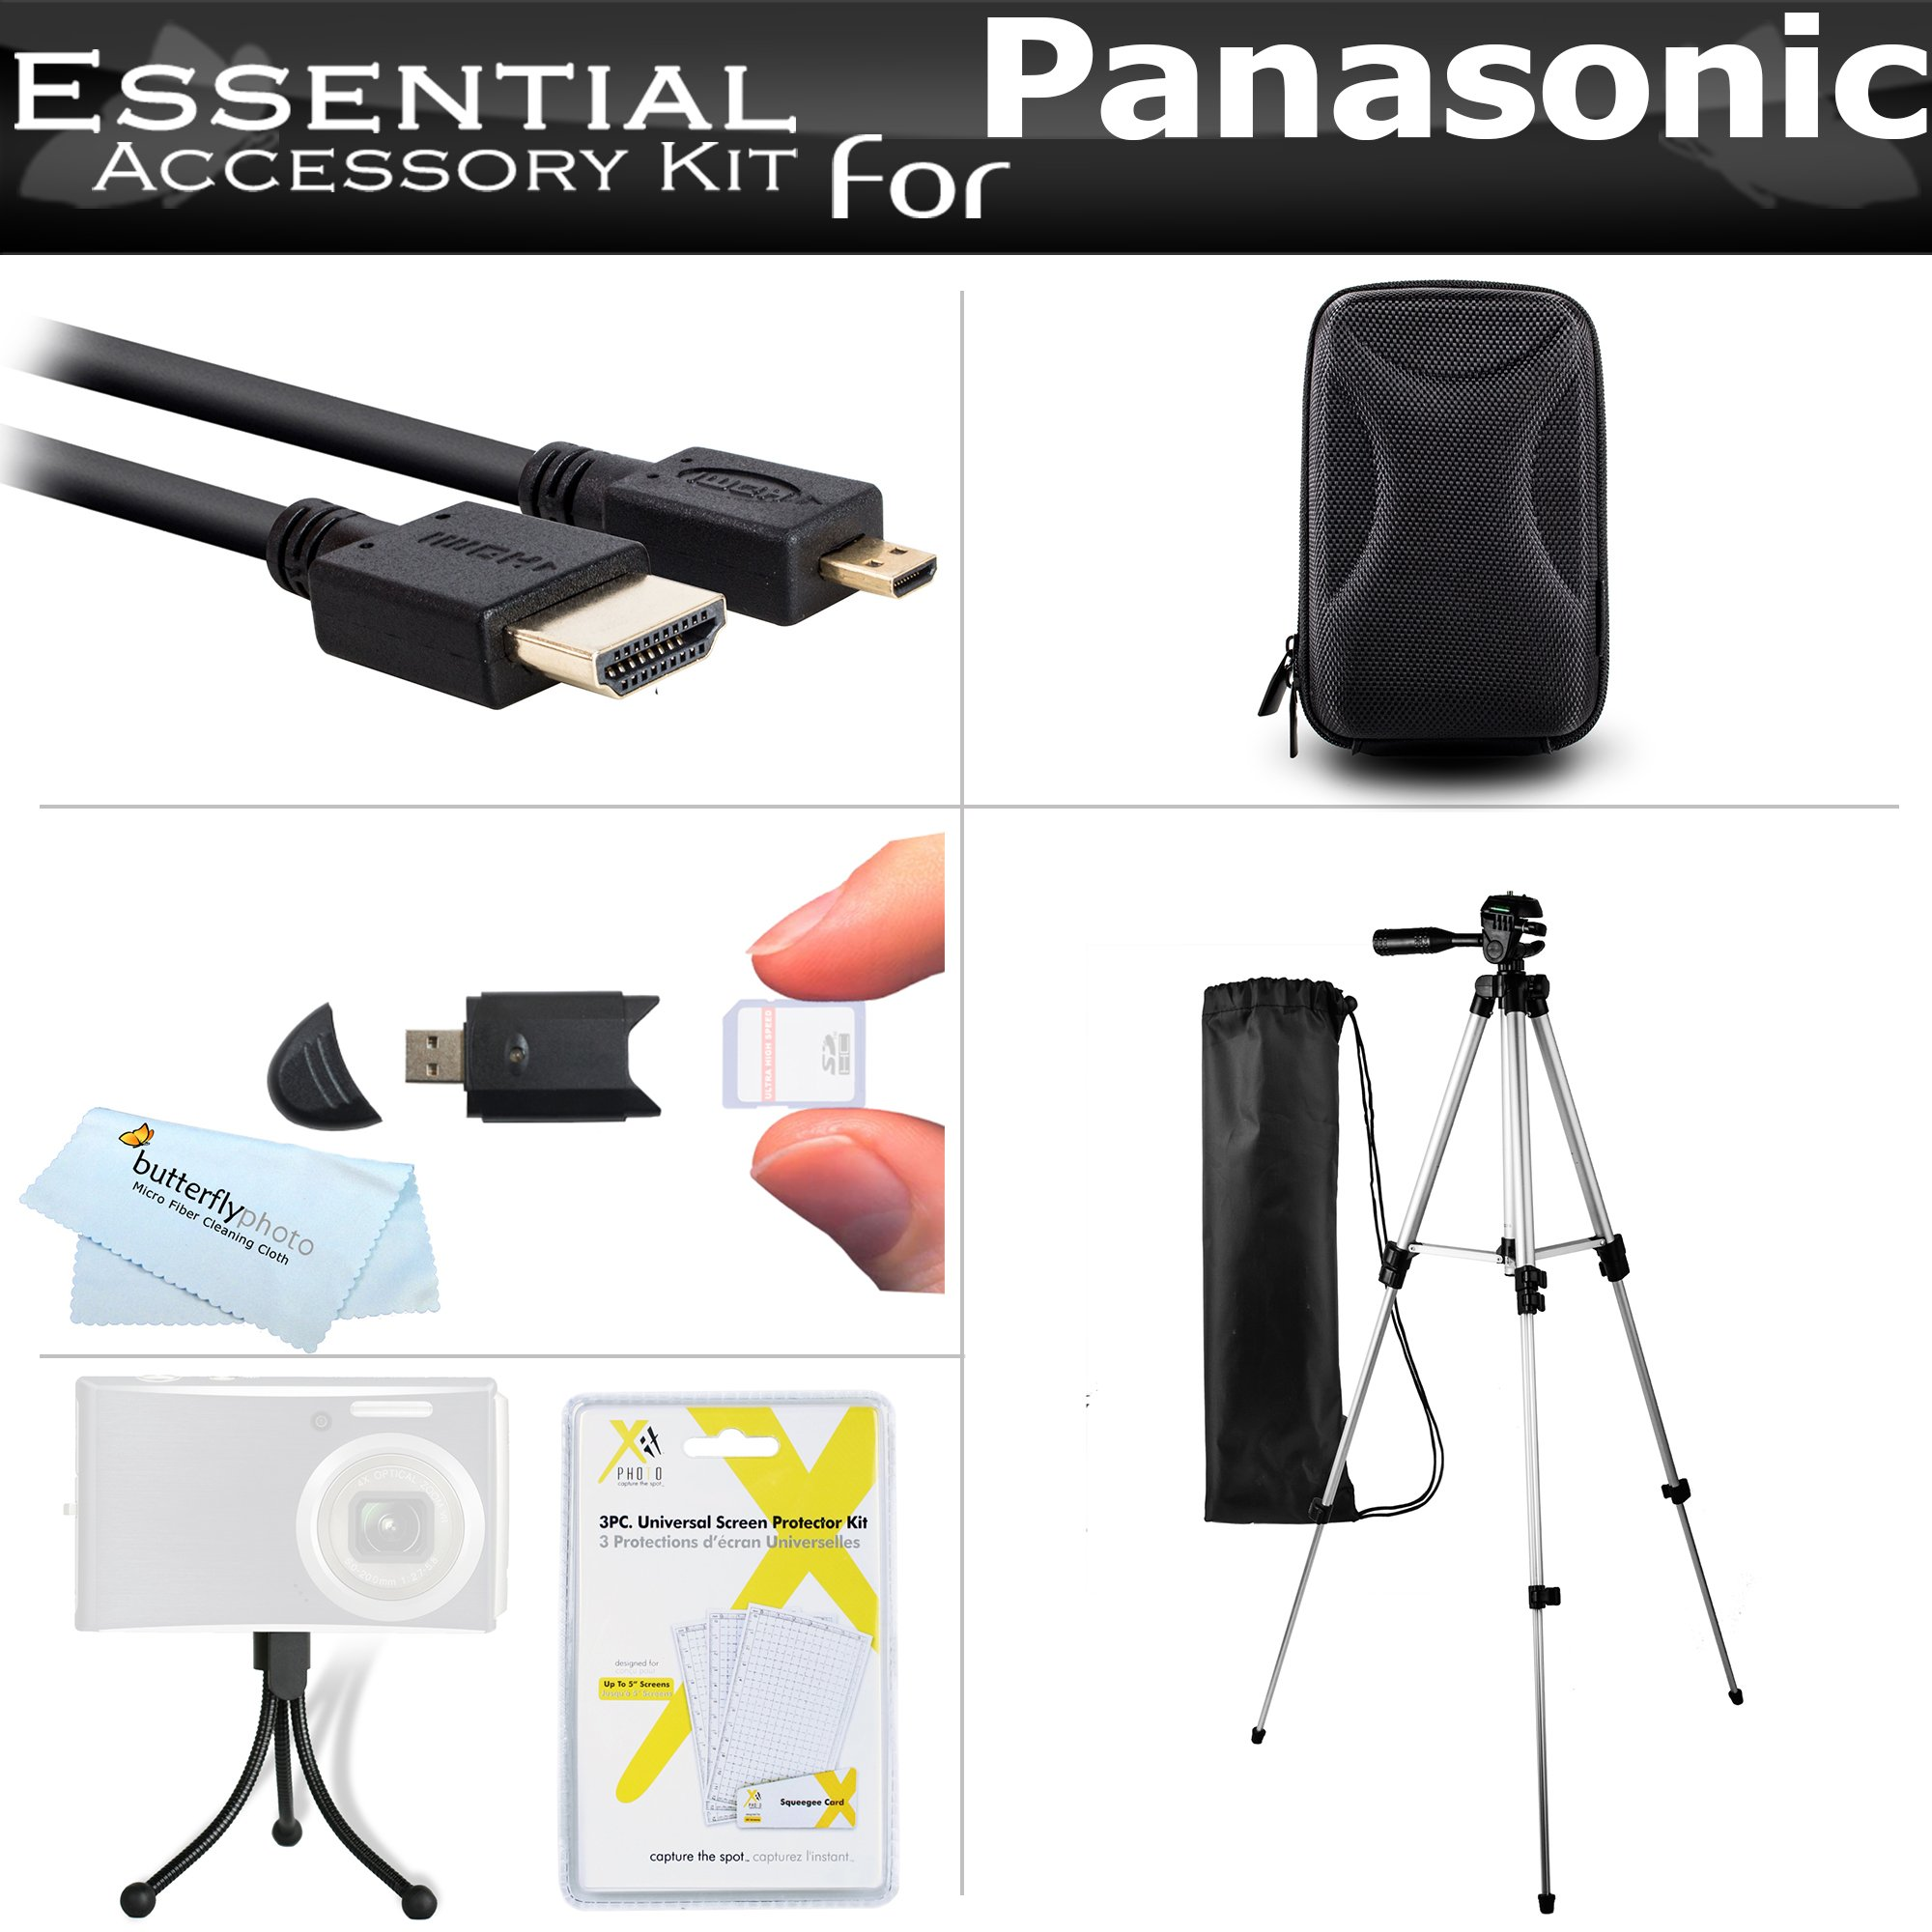 Starter Accessories Kit For The Panasonic ZS50, DMC-ZS45K, DMC-ZS40K, DMC-ZS35K, DMC-ZS30, DMC-TS6, DMC-ZS60K, DMC-ZS100K Digital Camera Includes Case + 50 Tripod With Case + Micro HDMI Cable + More by ButterflyPhoto